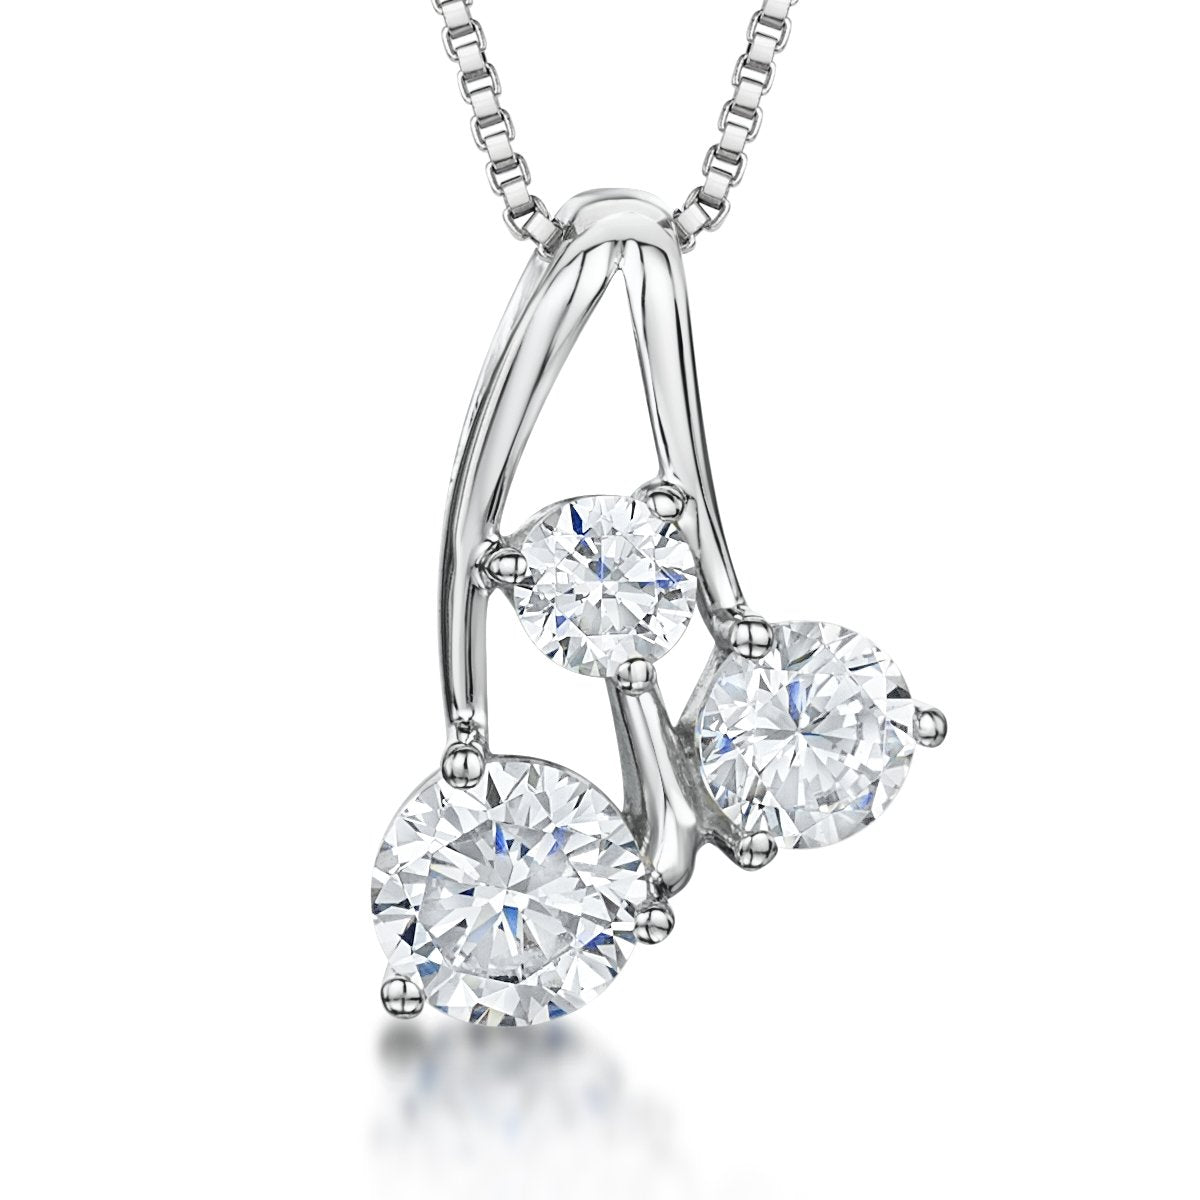 Sterling Silver Cherry Pendant Set With Three Cubic Zirconia Stonespendants - JOOLS By Jenny Brown